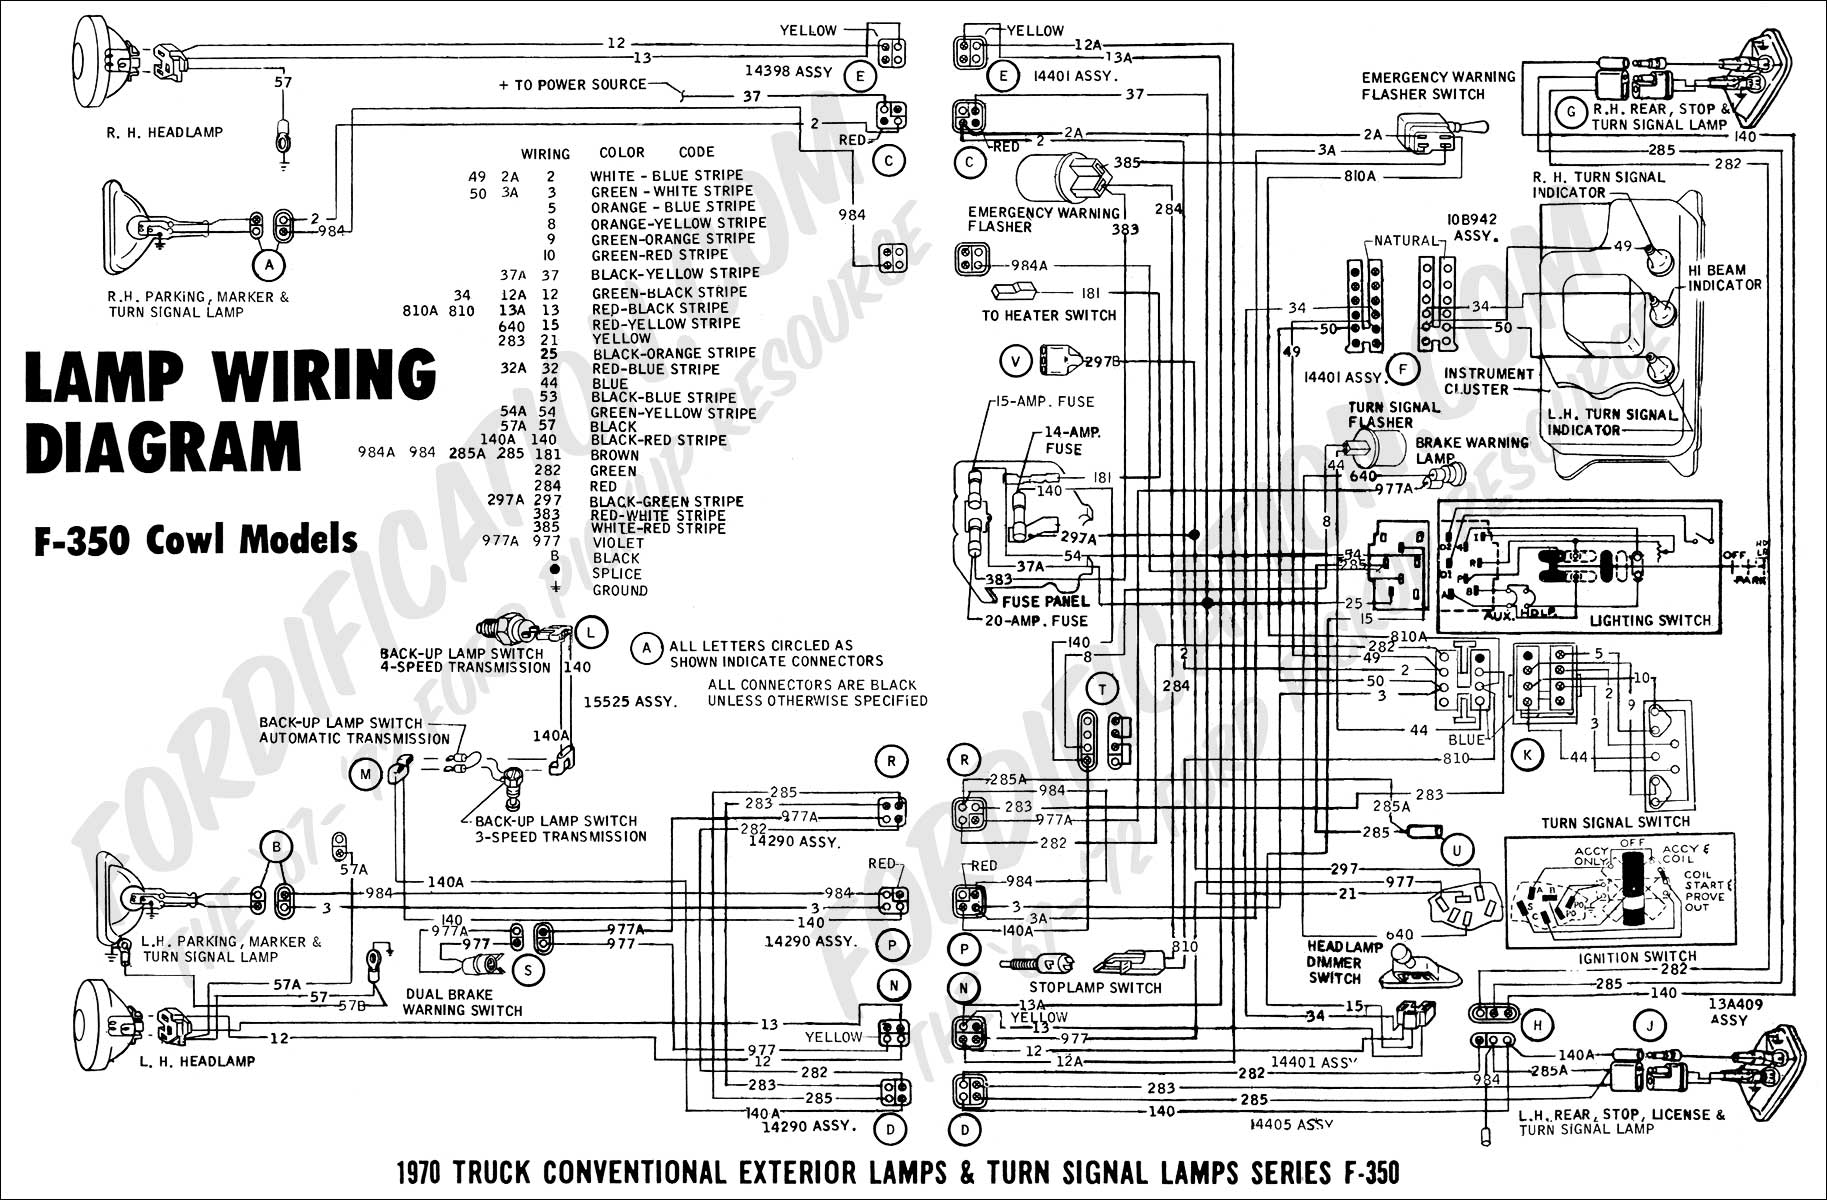 Ford Ranger Headlight Wiring Diagram 2000 Archive Of Automotive 2003 F350 Transmission Detailed Schematics Rh Antonartgallery Com